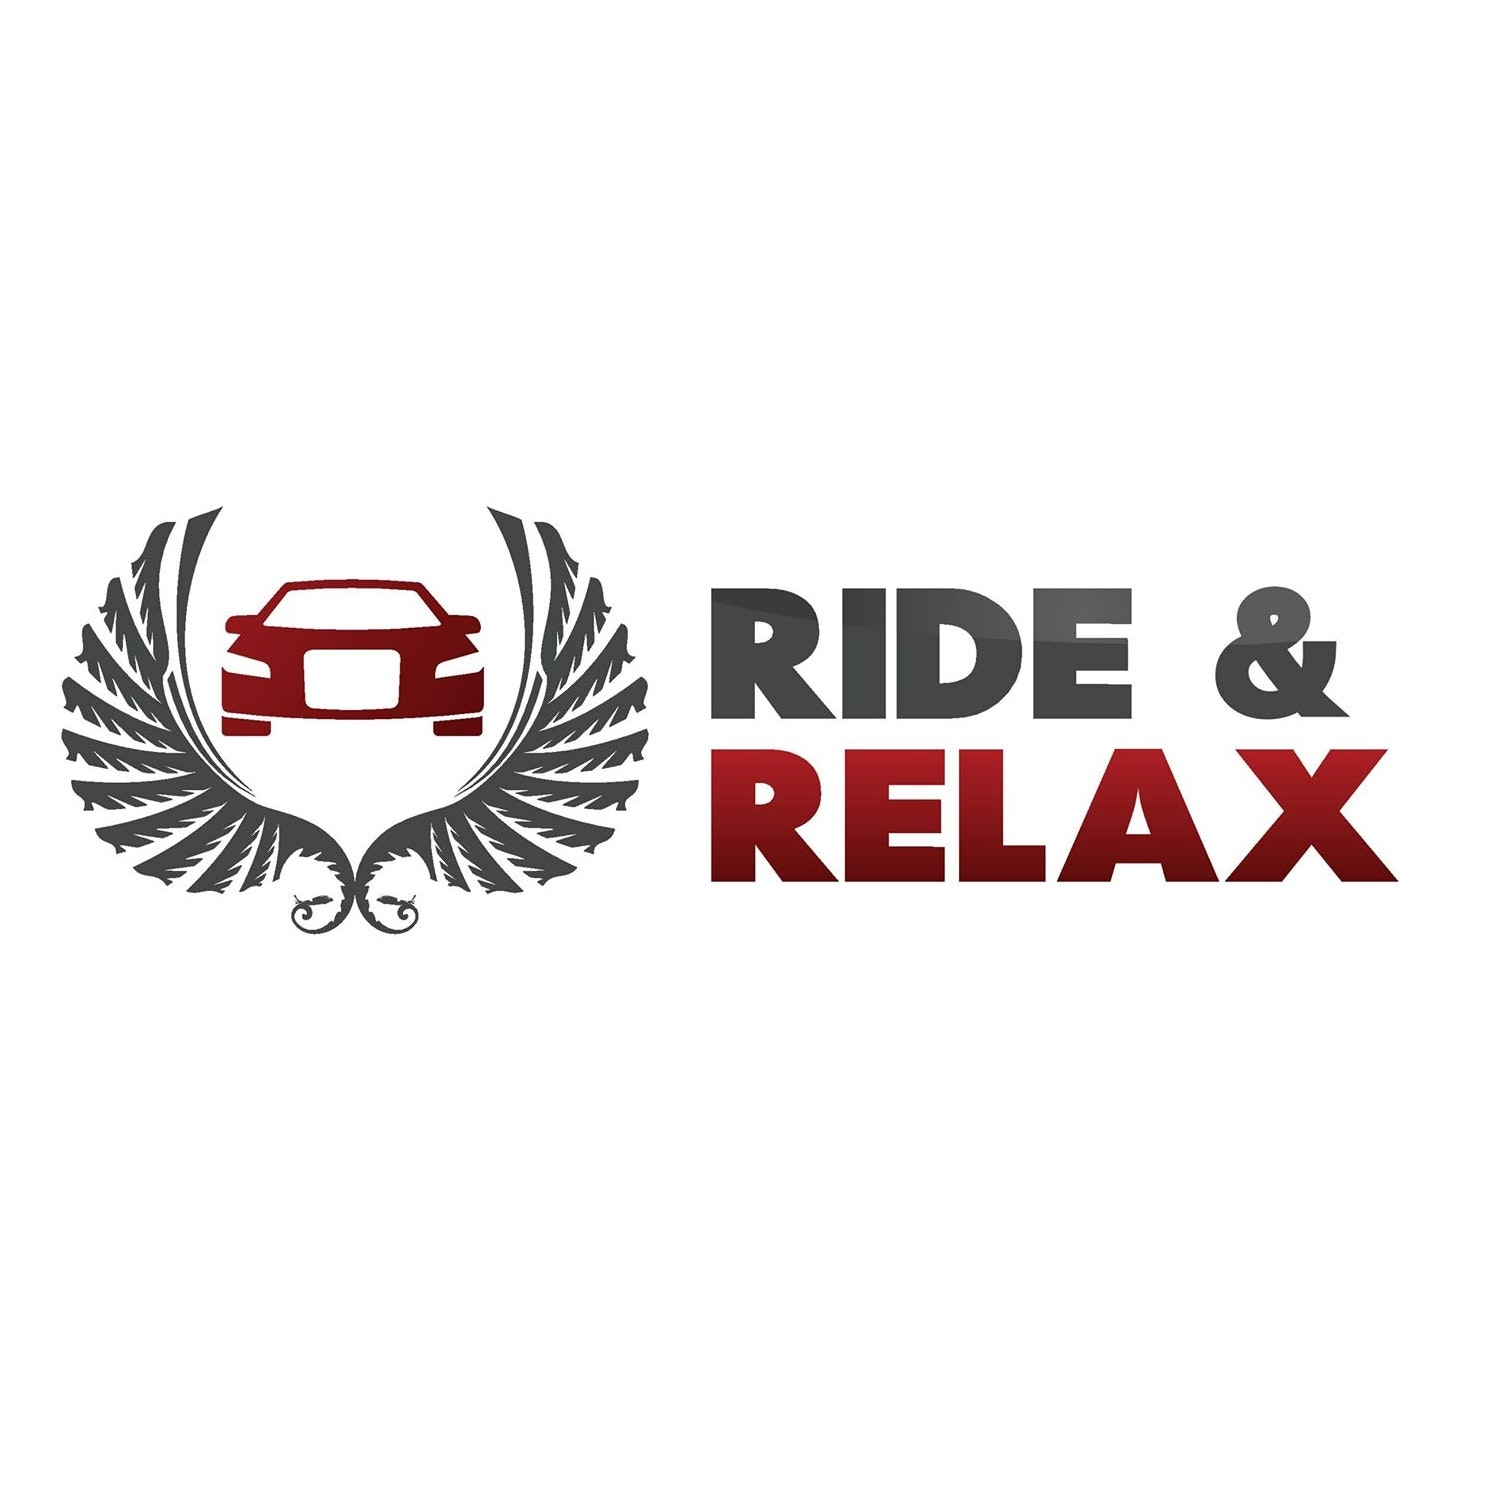 Ride & Relax logo